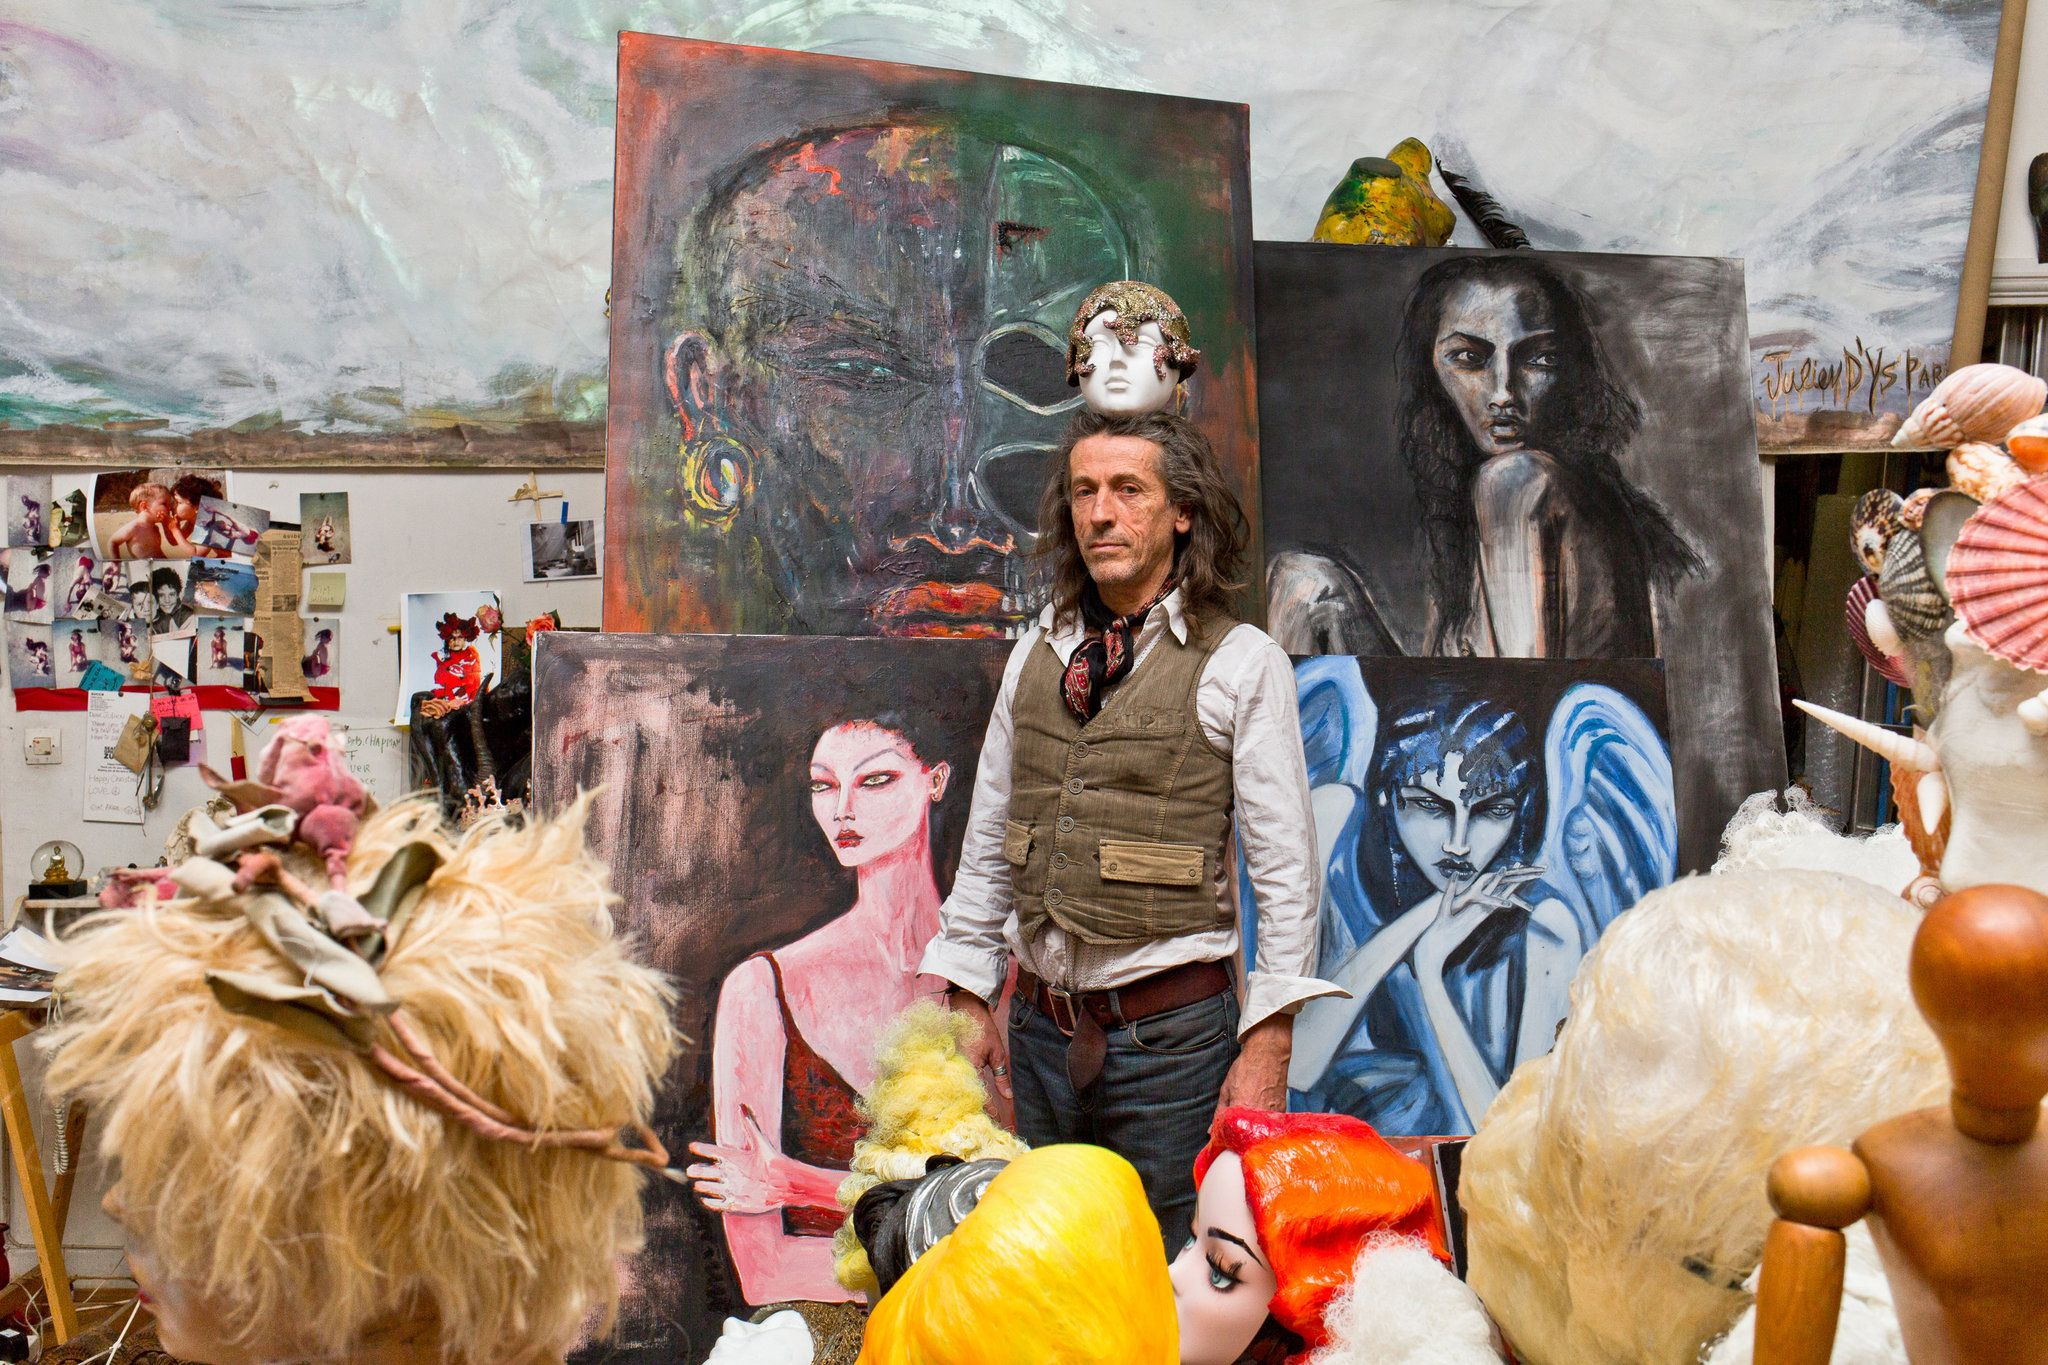 Julien D'ys - his conceptual work with Comme des Garcons, Galliano etc. The eccentric hairstylist and painter brings T into his workspace-meets-cabinet-of-curiosities.